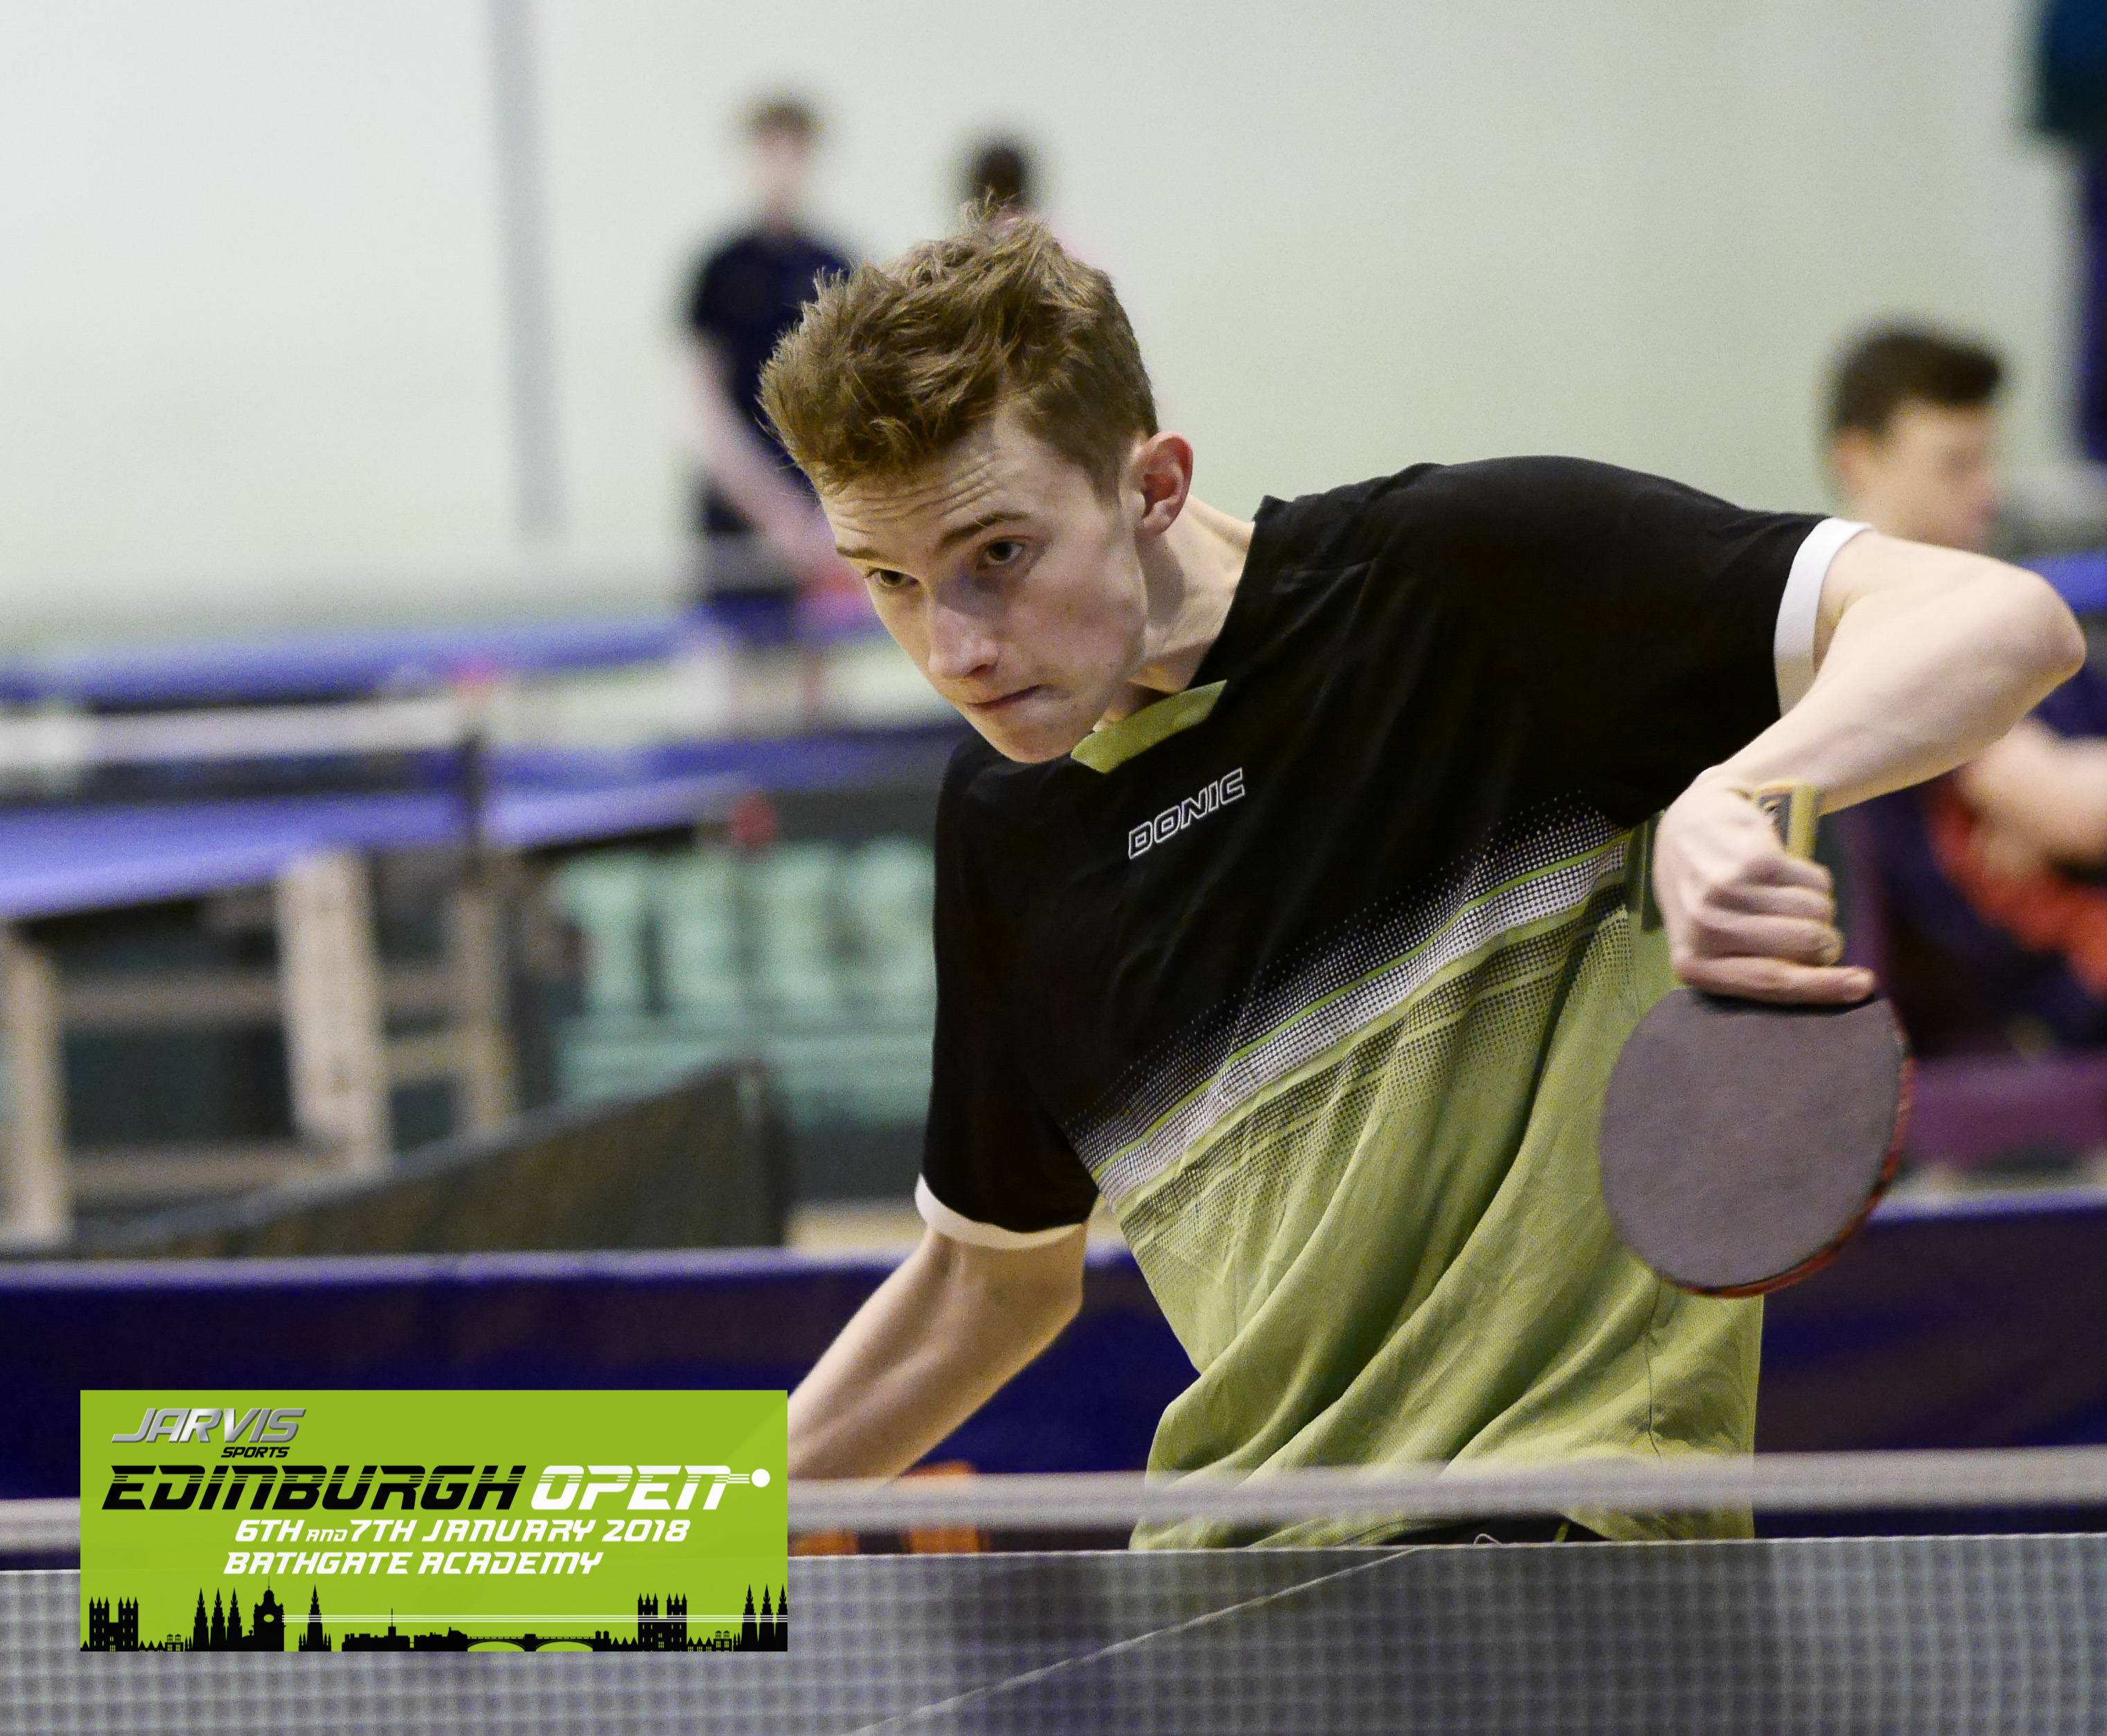 Jarvis Sports Edinburgh Open 2019 5th & 6th January - Player List